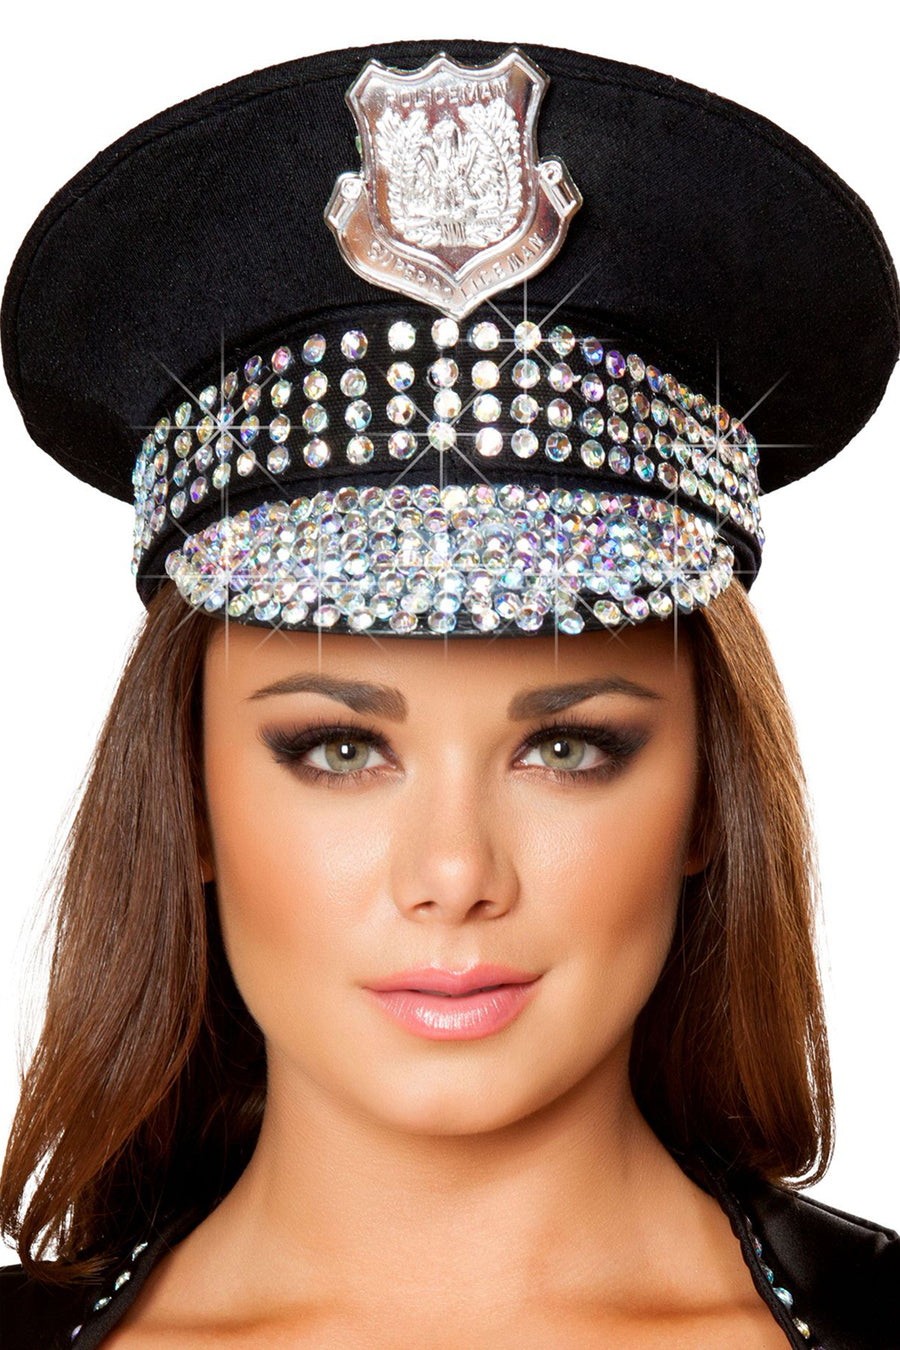 Studded Police Hat - Accessories, Roma - YourLamode